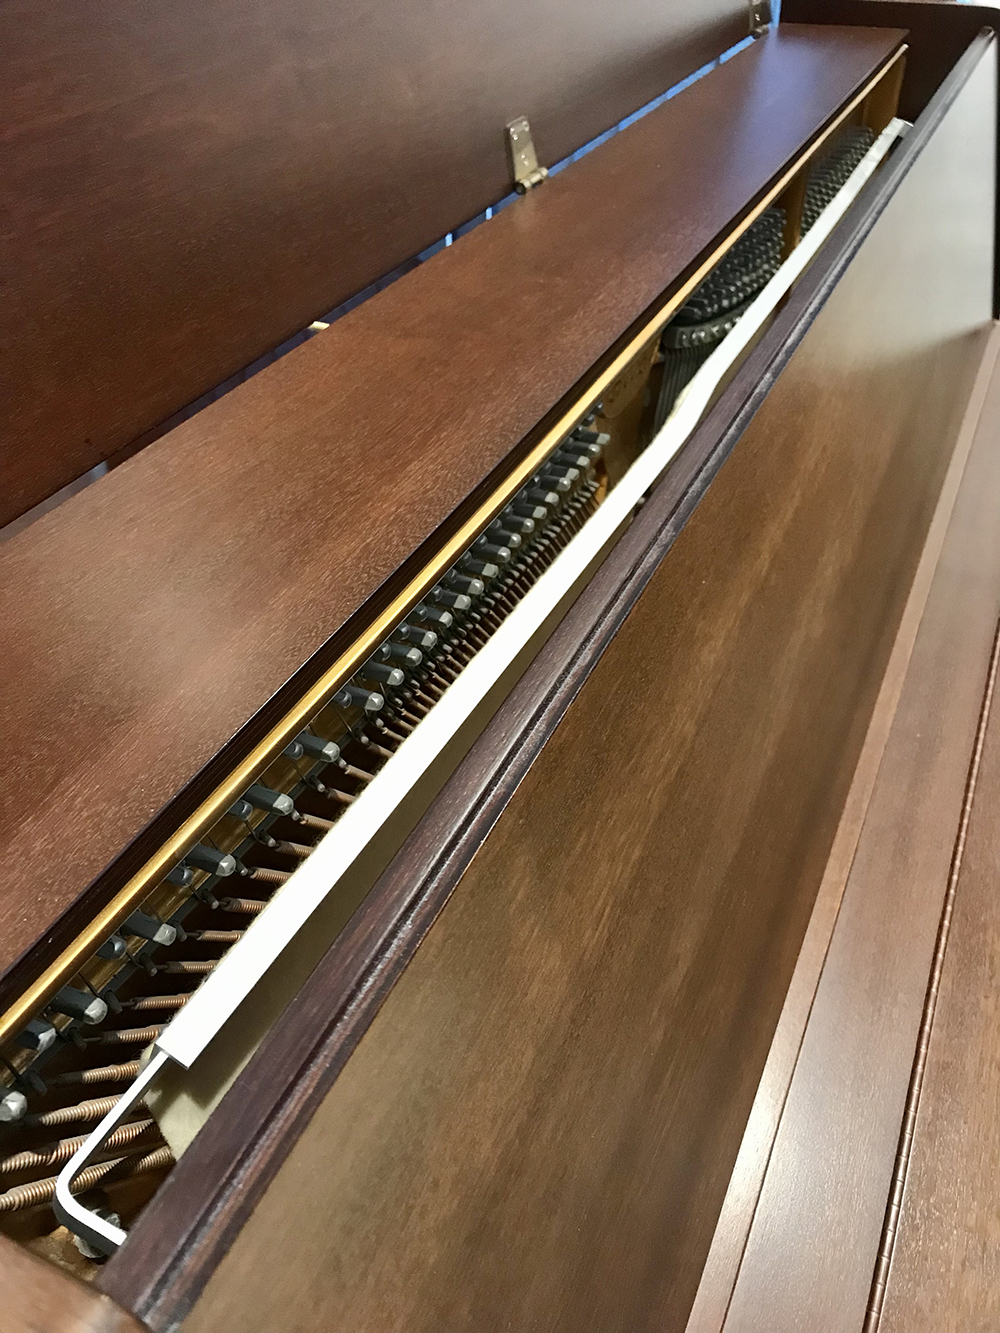 ibach-upright-quality-used-Piano-Dorset-6.jpg